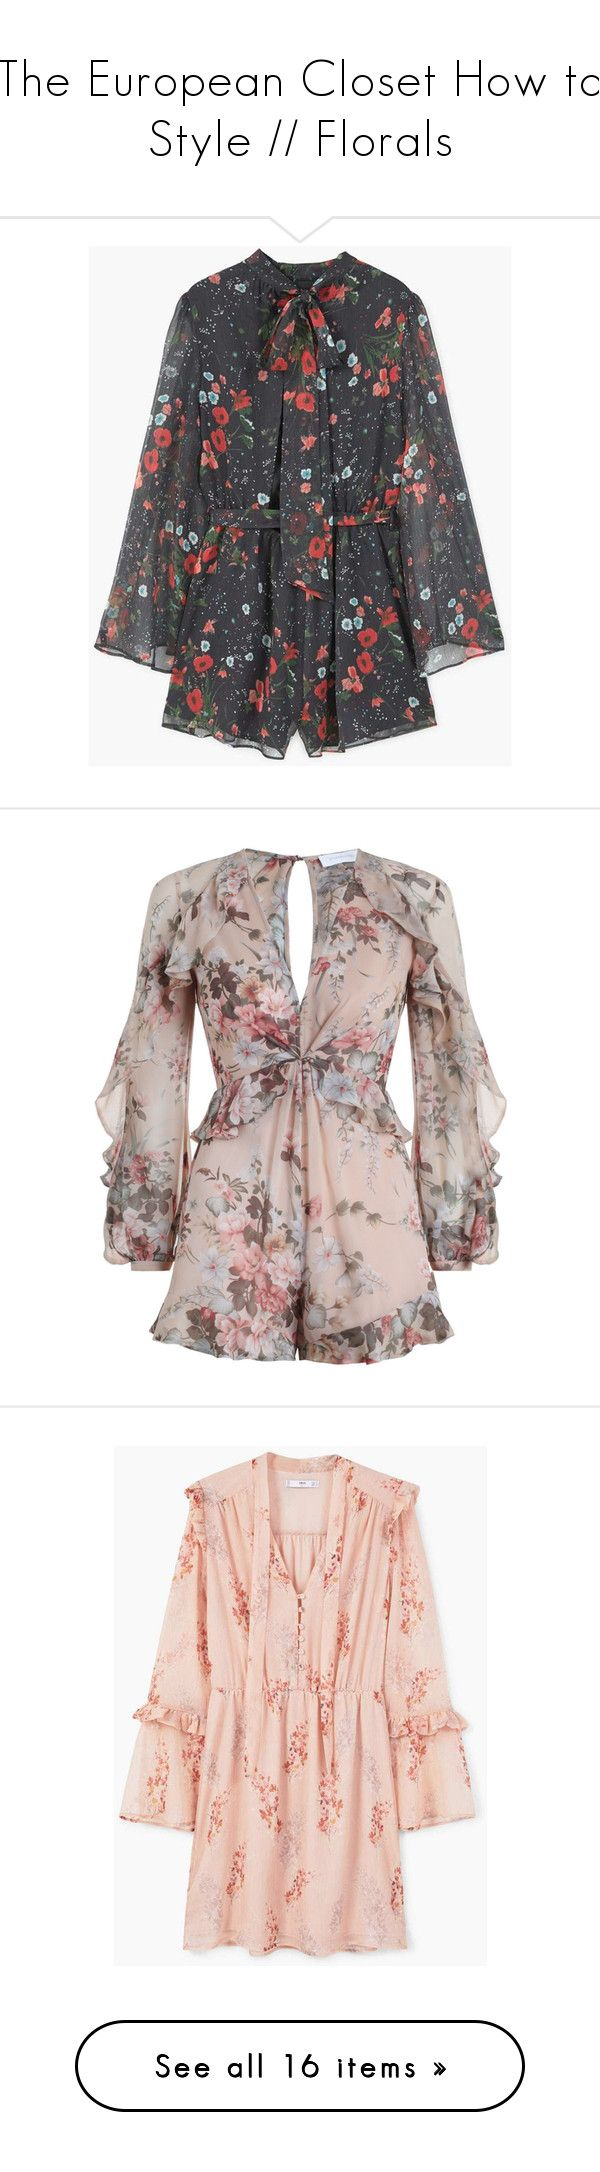 """""""The European Closet How to Style // Florals"""" by theeuropeancloset ❤ liked on Polyvore featuring jumpsuits, short jumpsuits, floral jumpsuit, floral print jumpsuit, mango jumpsuit, long jumpsuits, rompers, dresses, zimmermann and short sleeve jumpsuit"""